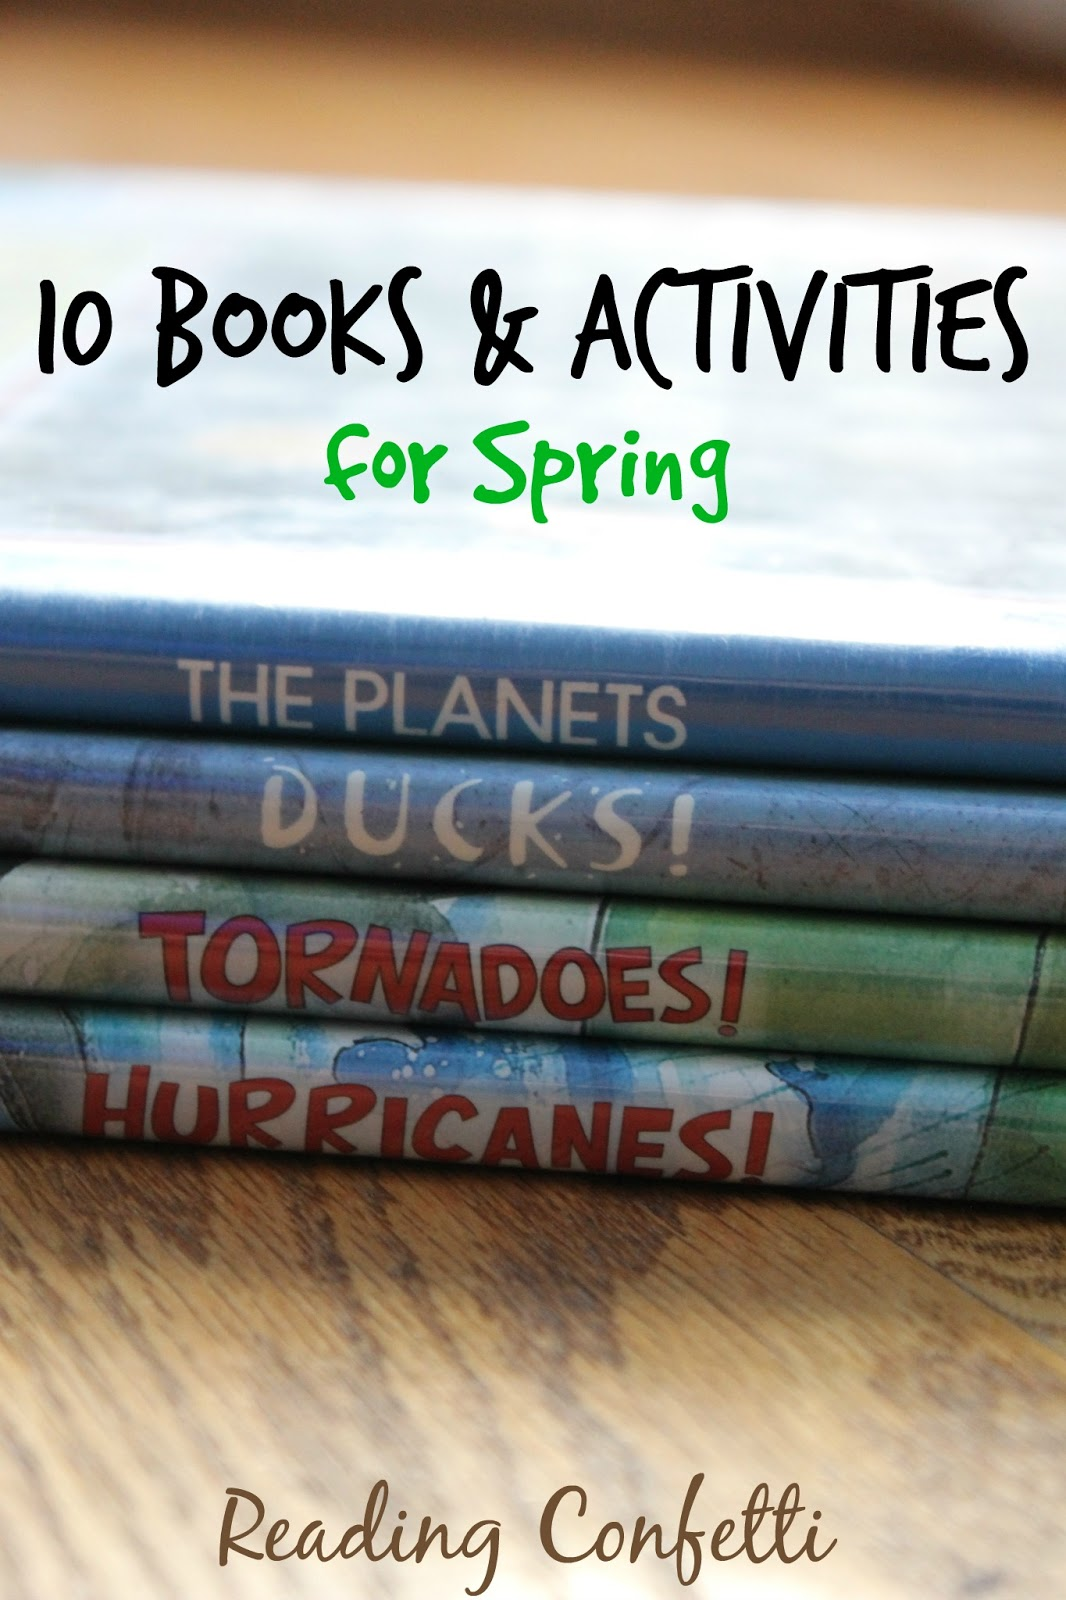 10 books and activities for spring